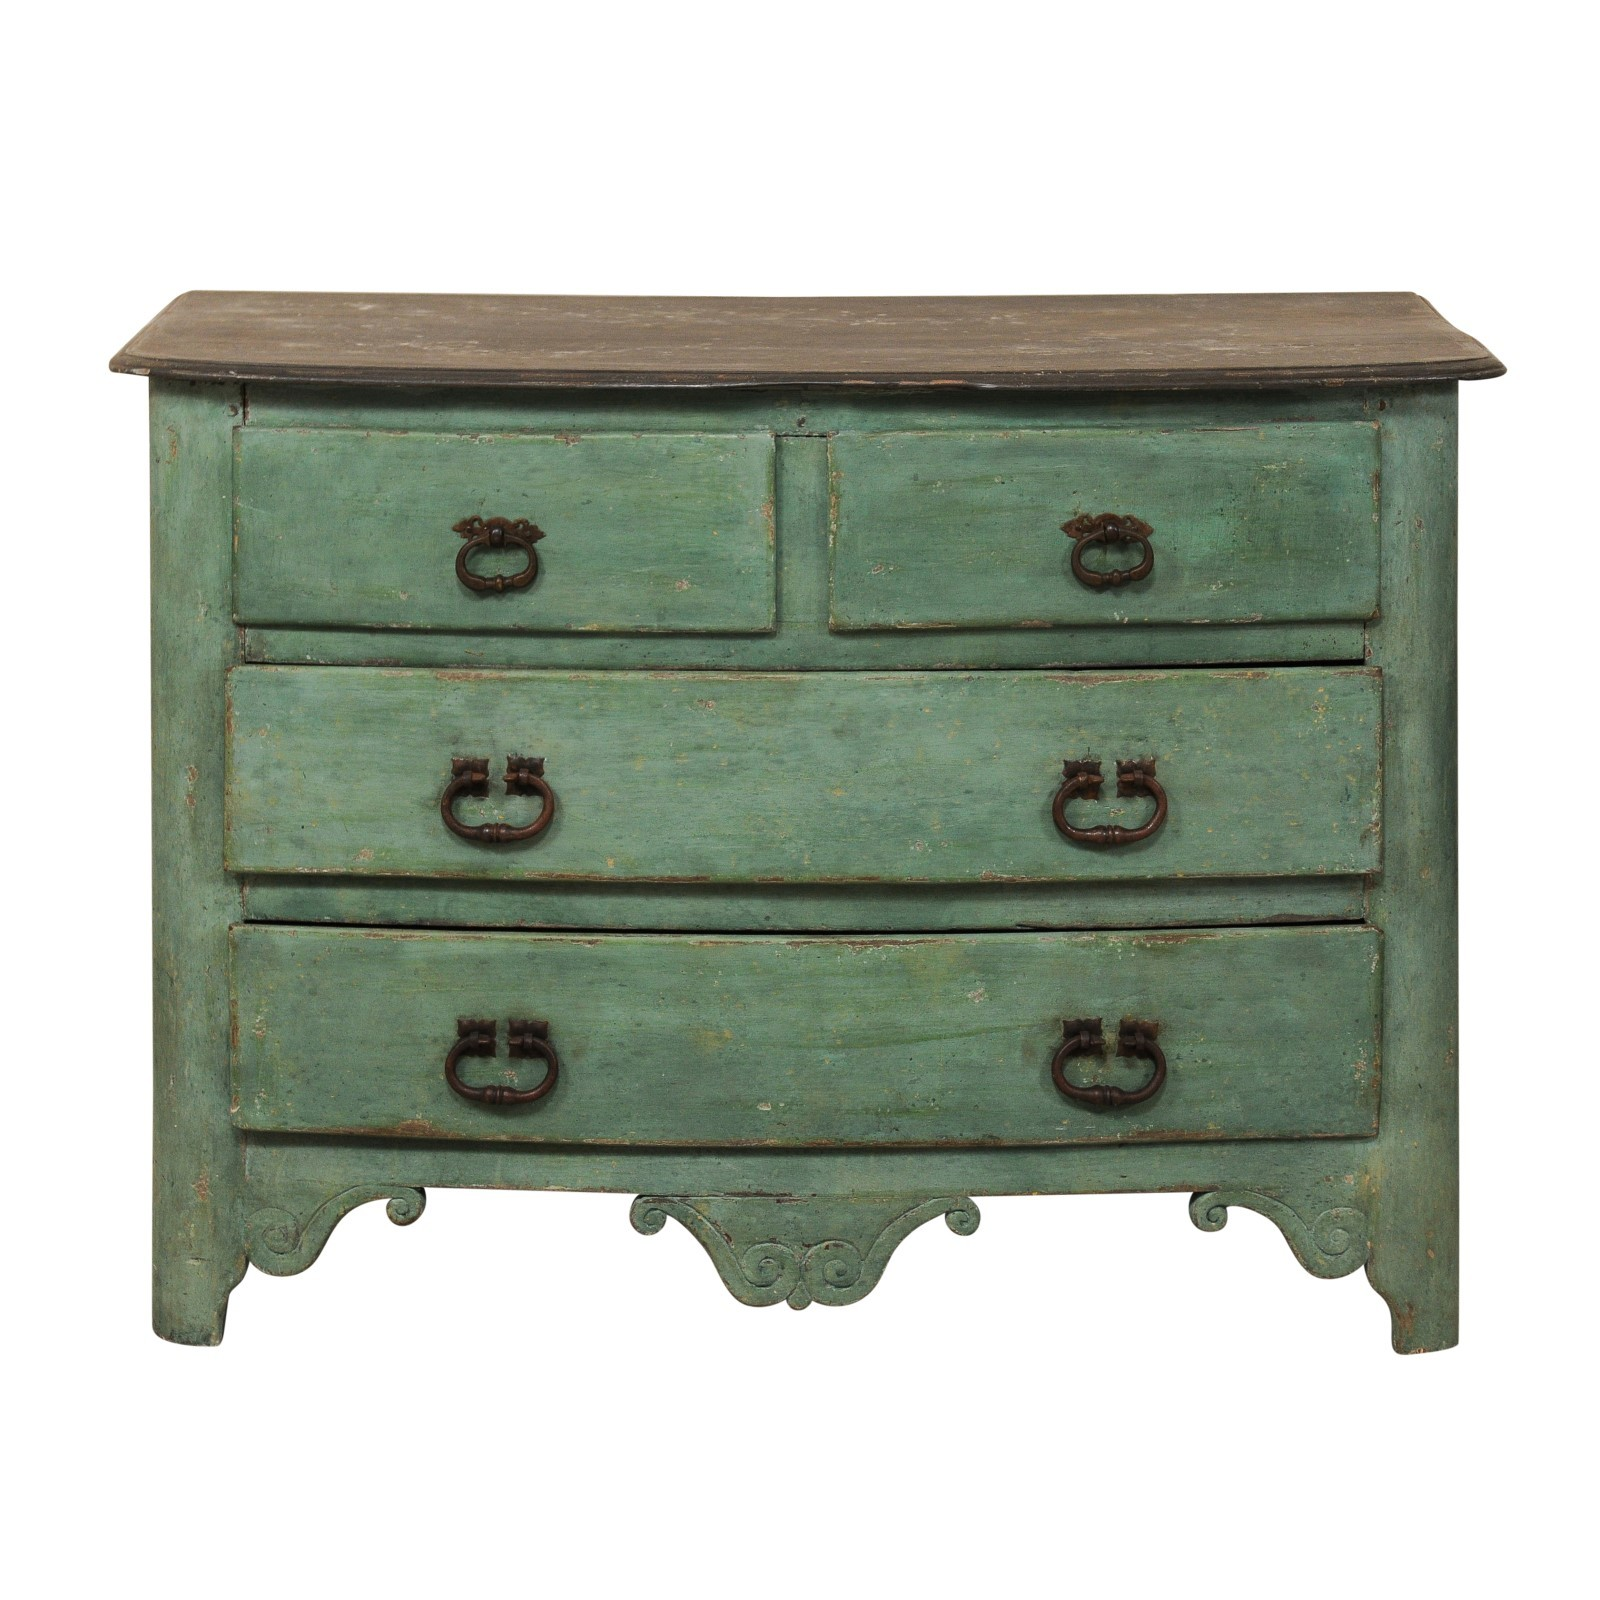 18th C. Painted French Chest